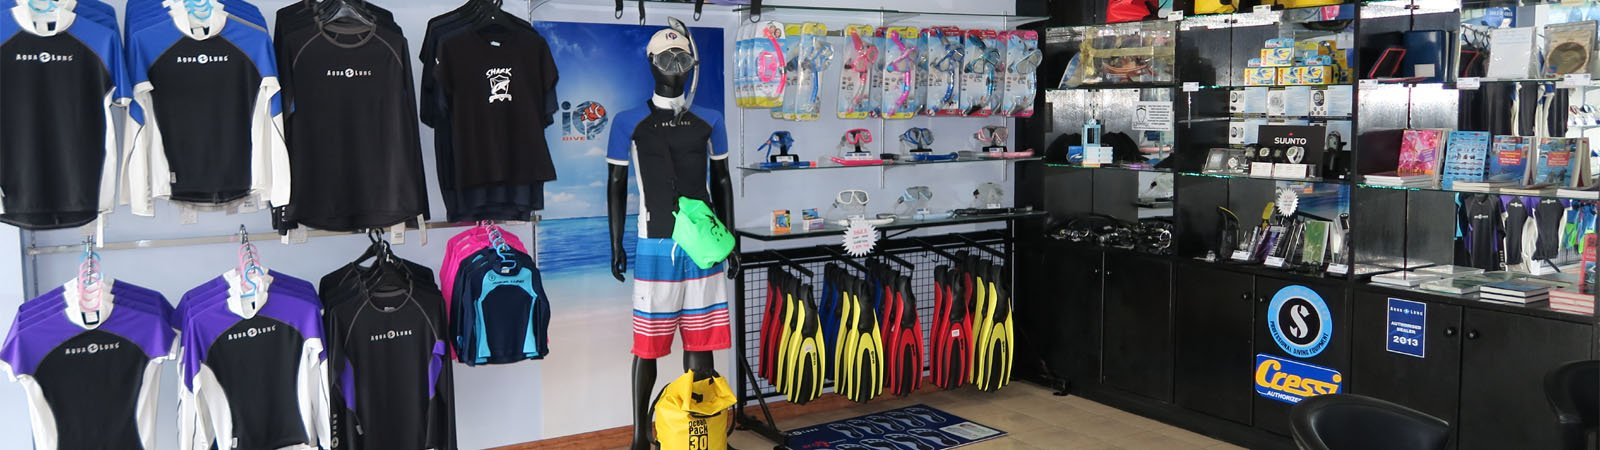 Diving Equipment Image